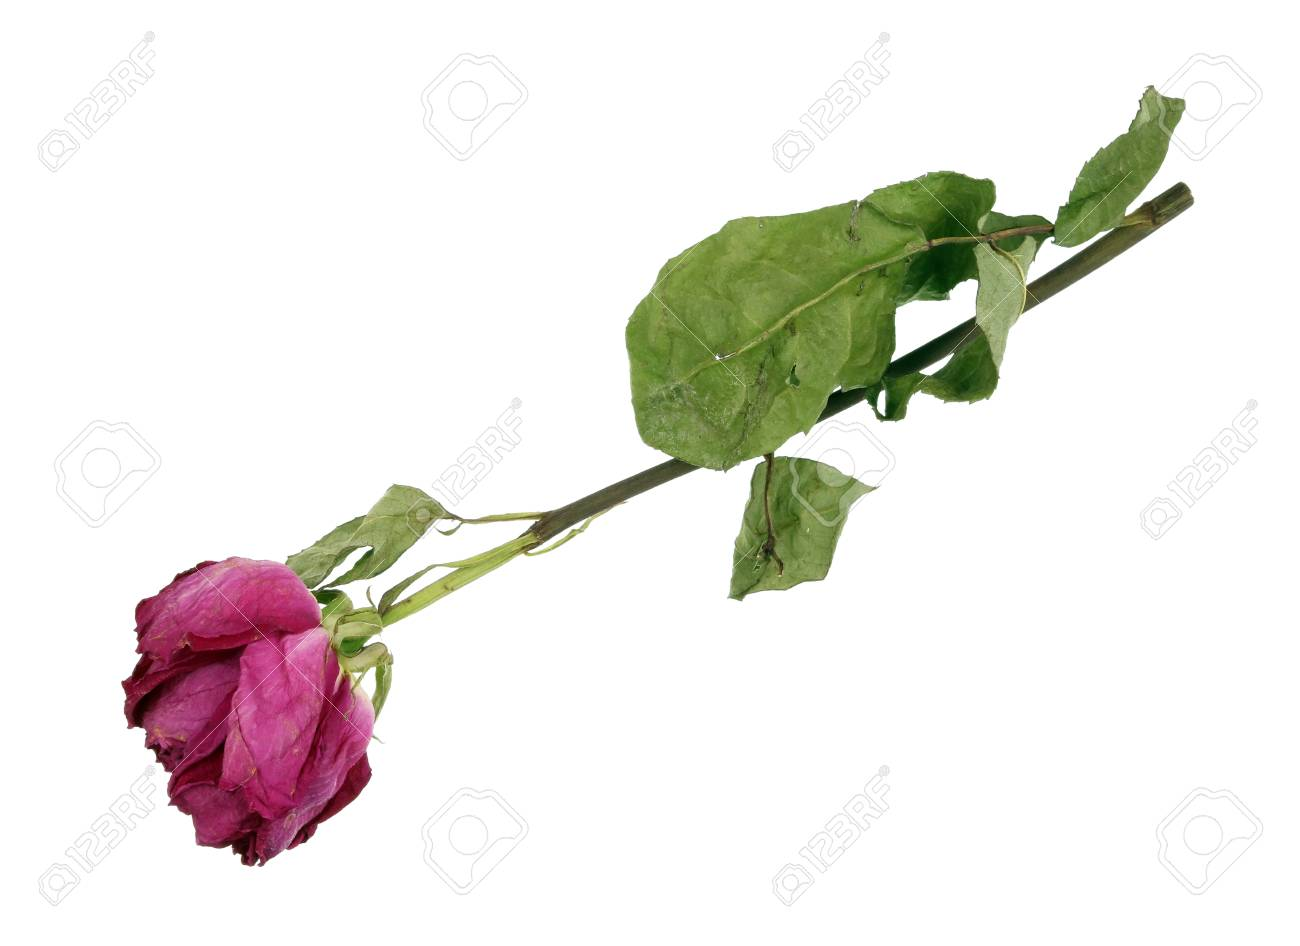 The Drying Up Dead Pink Rose Flower From A Wedding Bouquet Stock